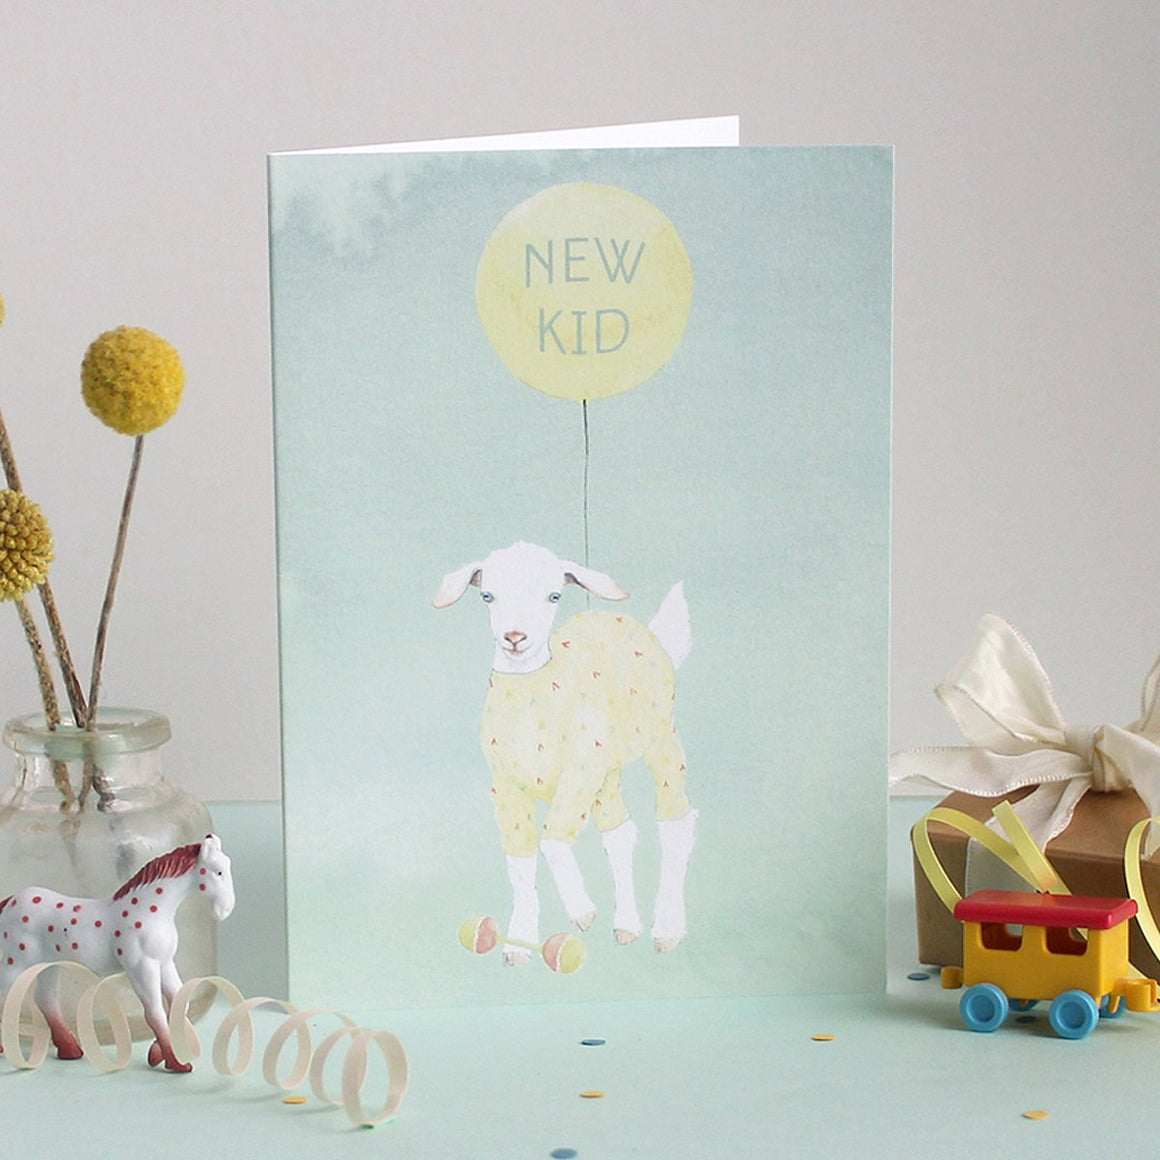 Mister Peebles Greeting Card 'New Kid'